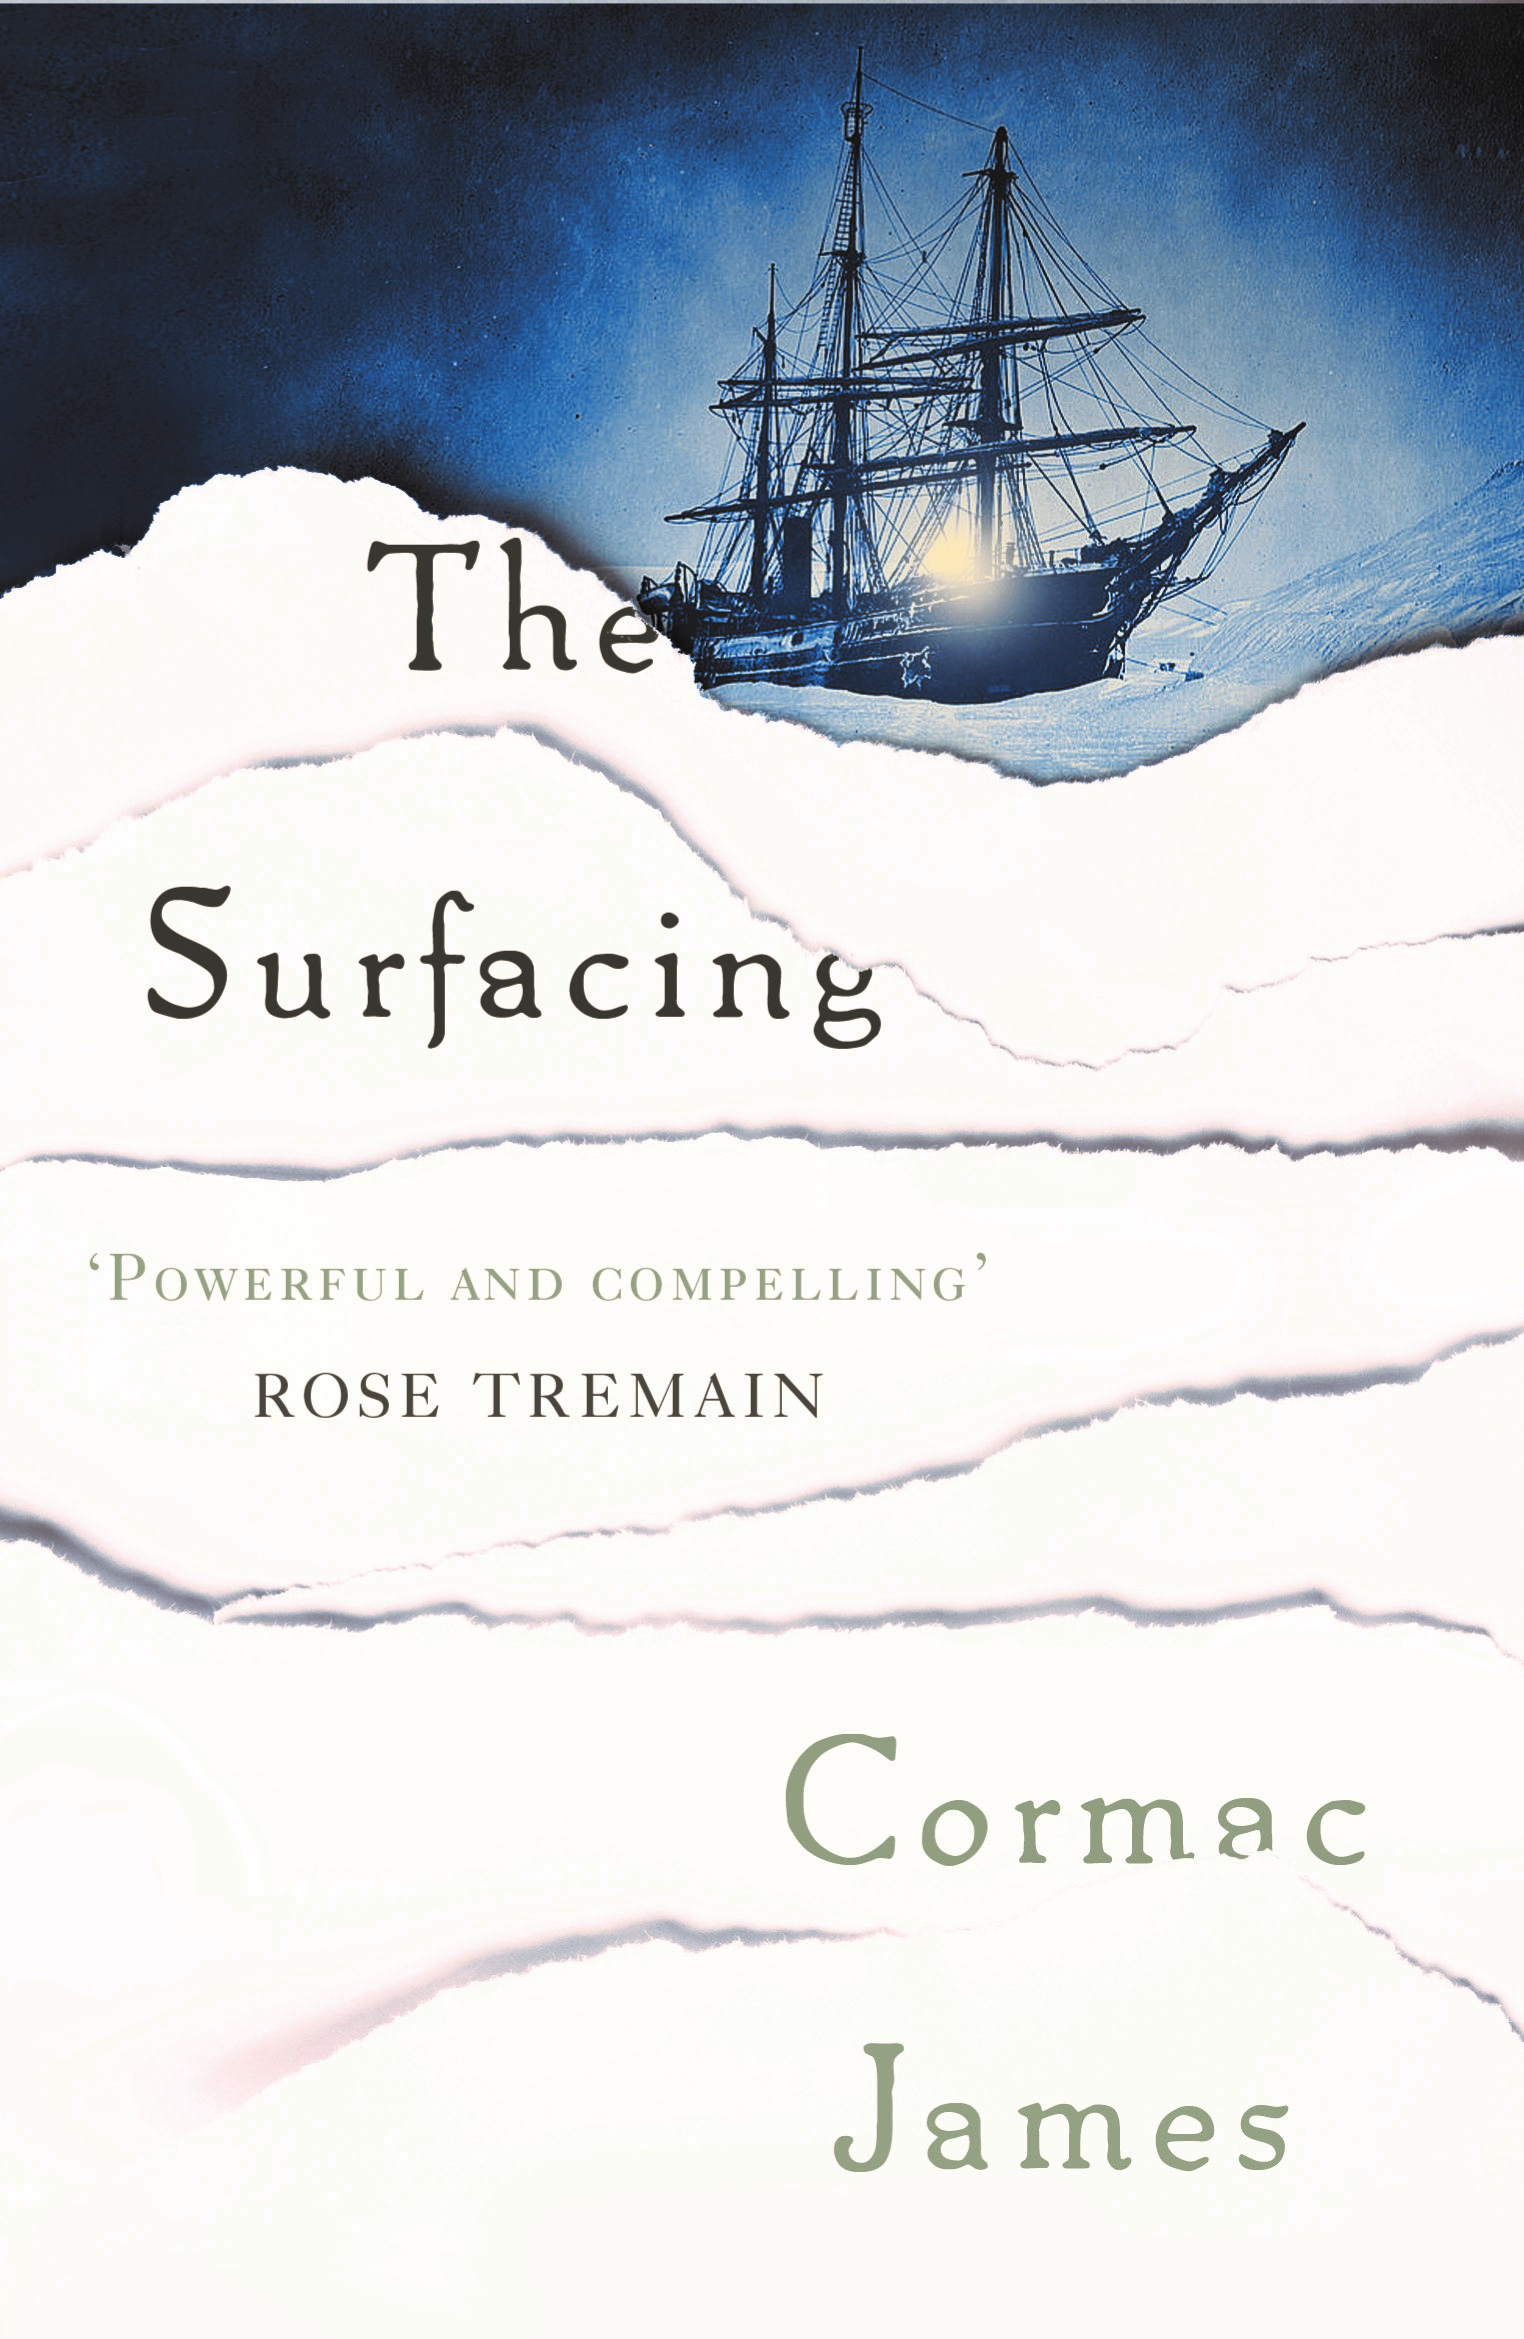 THE SURFACING  Literary Fiction, 384 pages Sandstone Press, September 2014  Morgan is second-in-command on a ship searching for Franklin's lost expedition in the 1850s – when he realises there is a pregnant stowaway on board, he is the father and the Impetus becomes trapped in the ice.